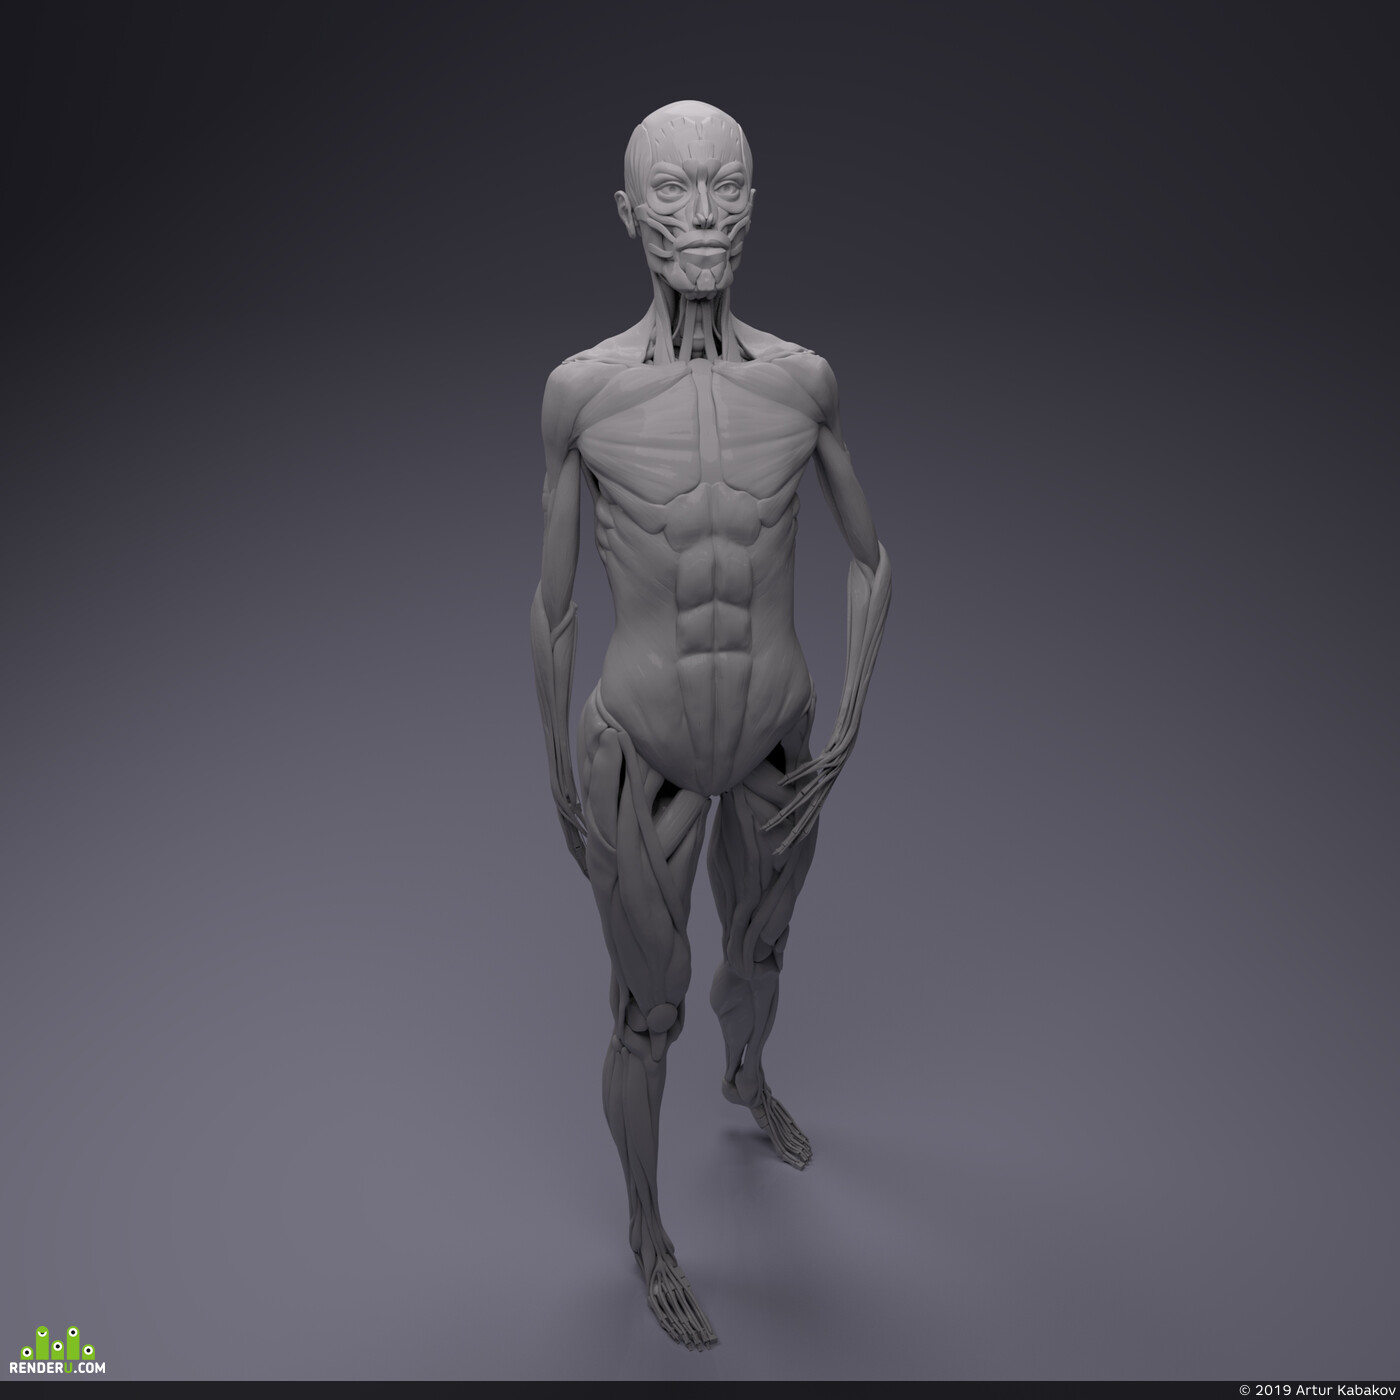 Character, anatomy, digital sculpture, Digital 3D